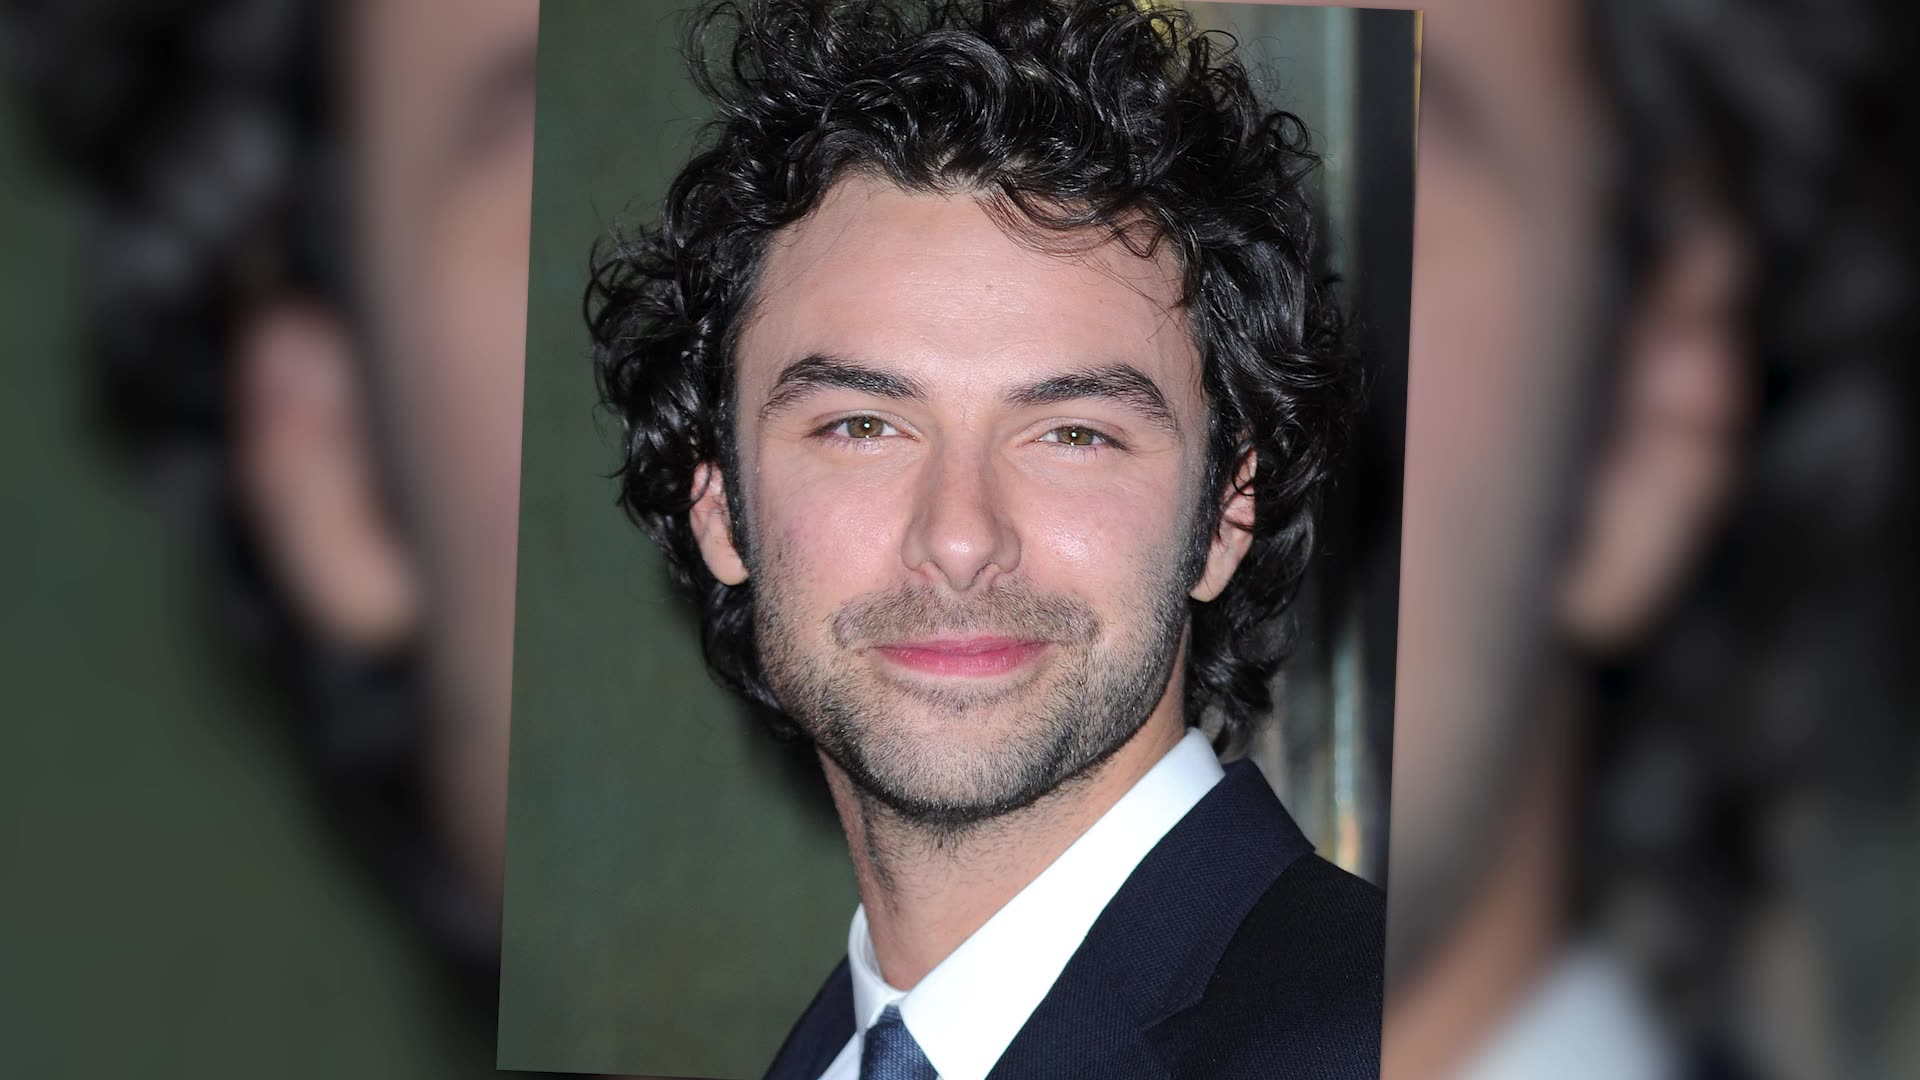 Man Crush Monday is All About Hobbit Star Aidan Turner